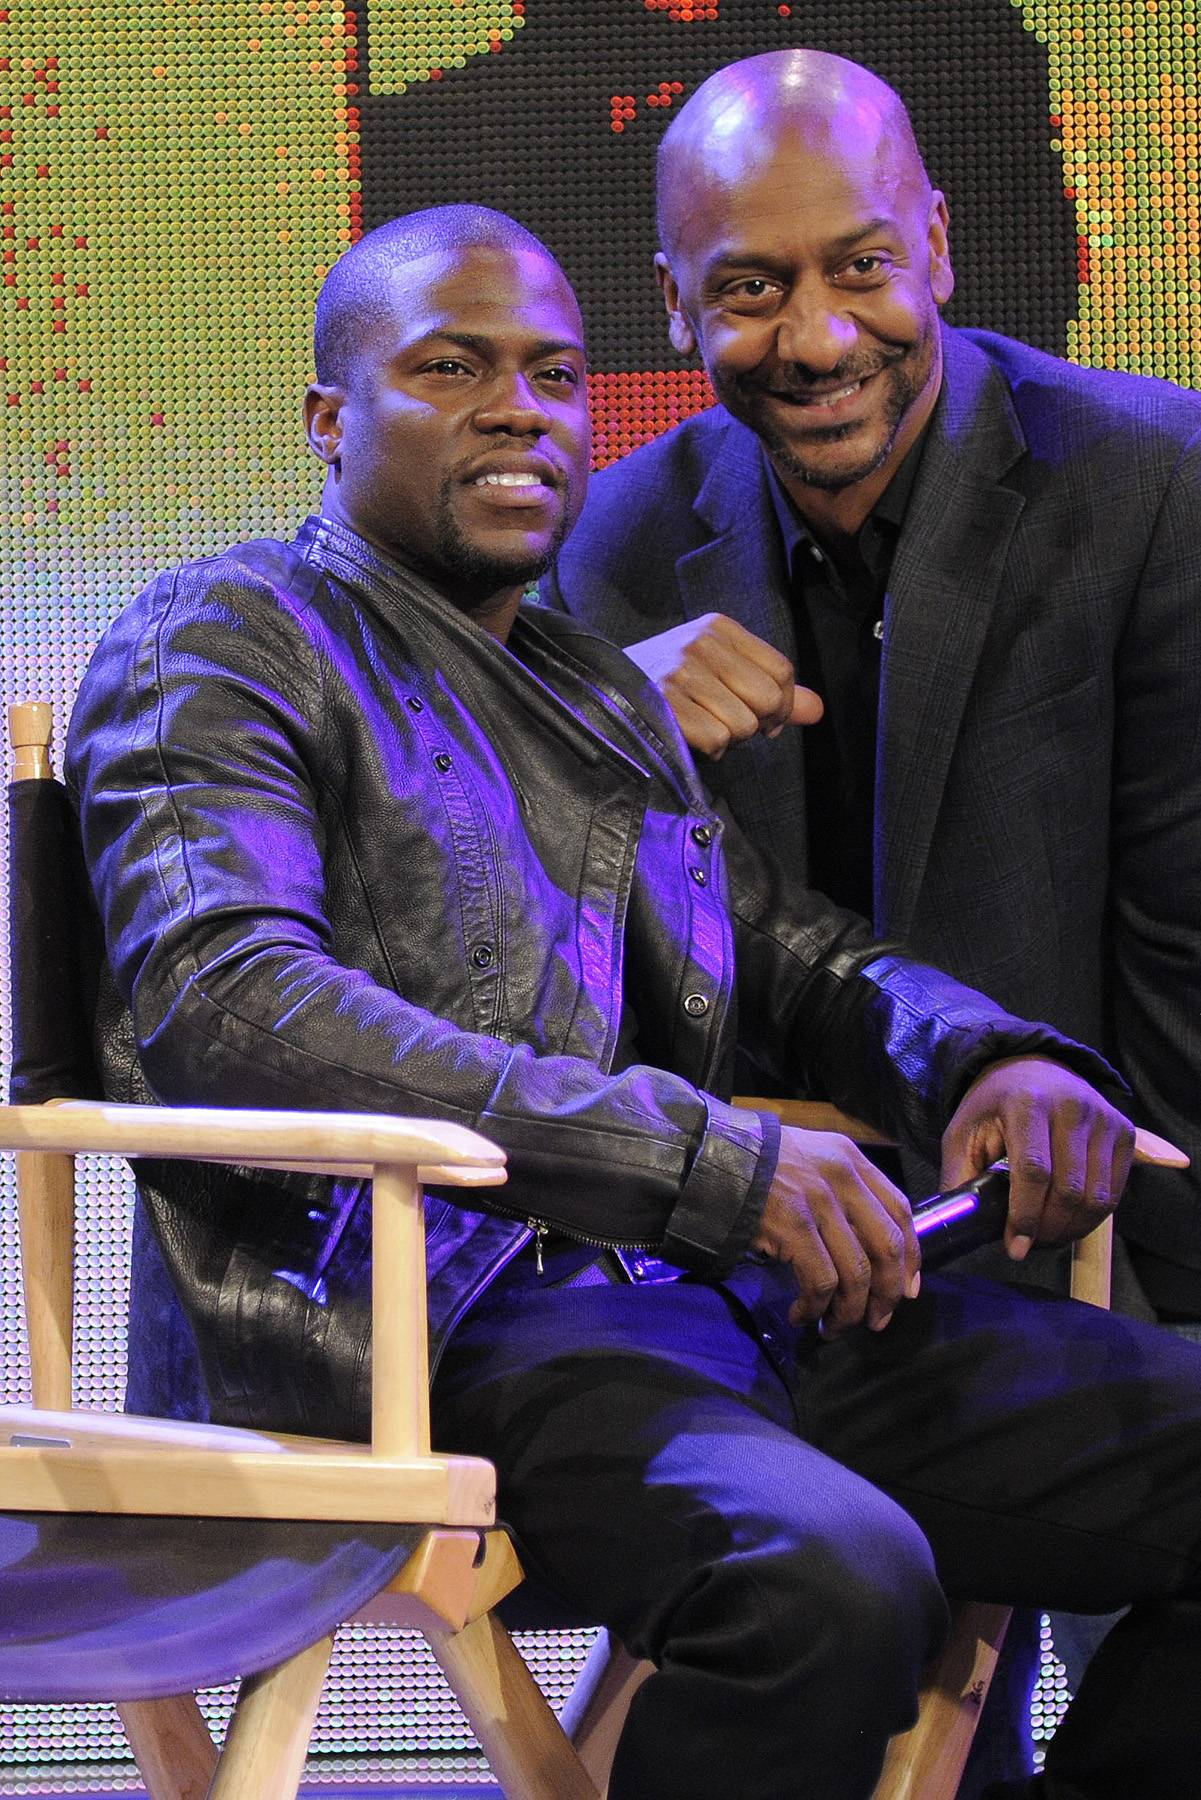 Stephen Hill with Kevin Hart - Stephen Hill with Kevin Hart at 106 & Park, April 5, 2012. (photo: John Ricard / BET).